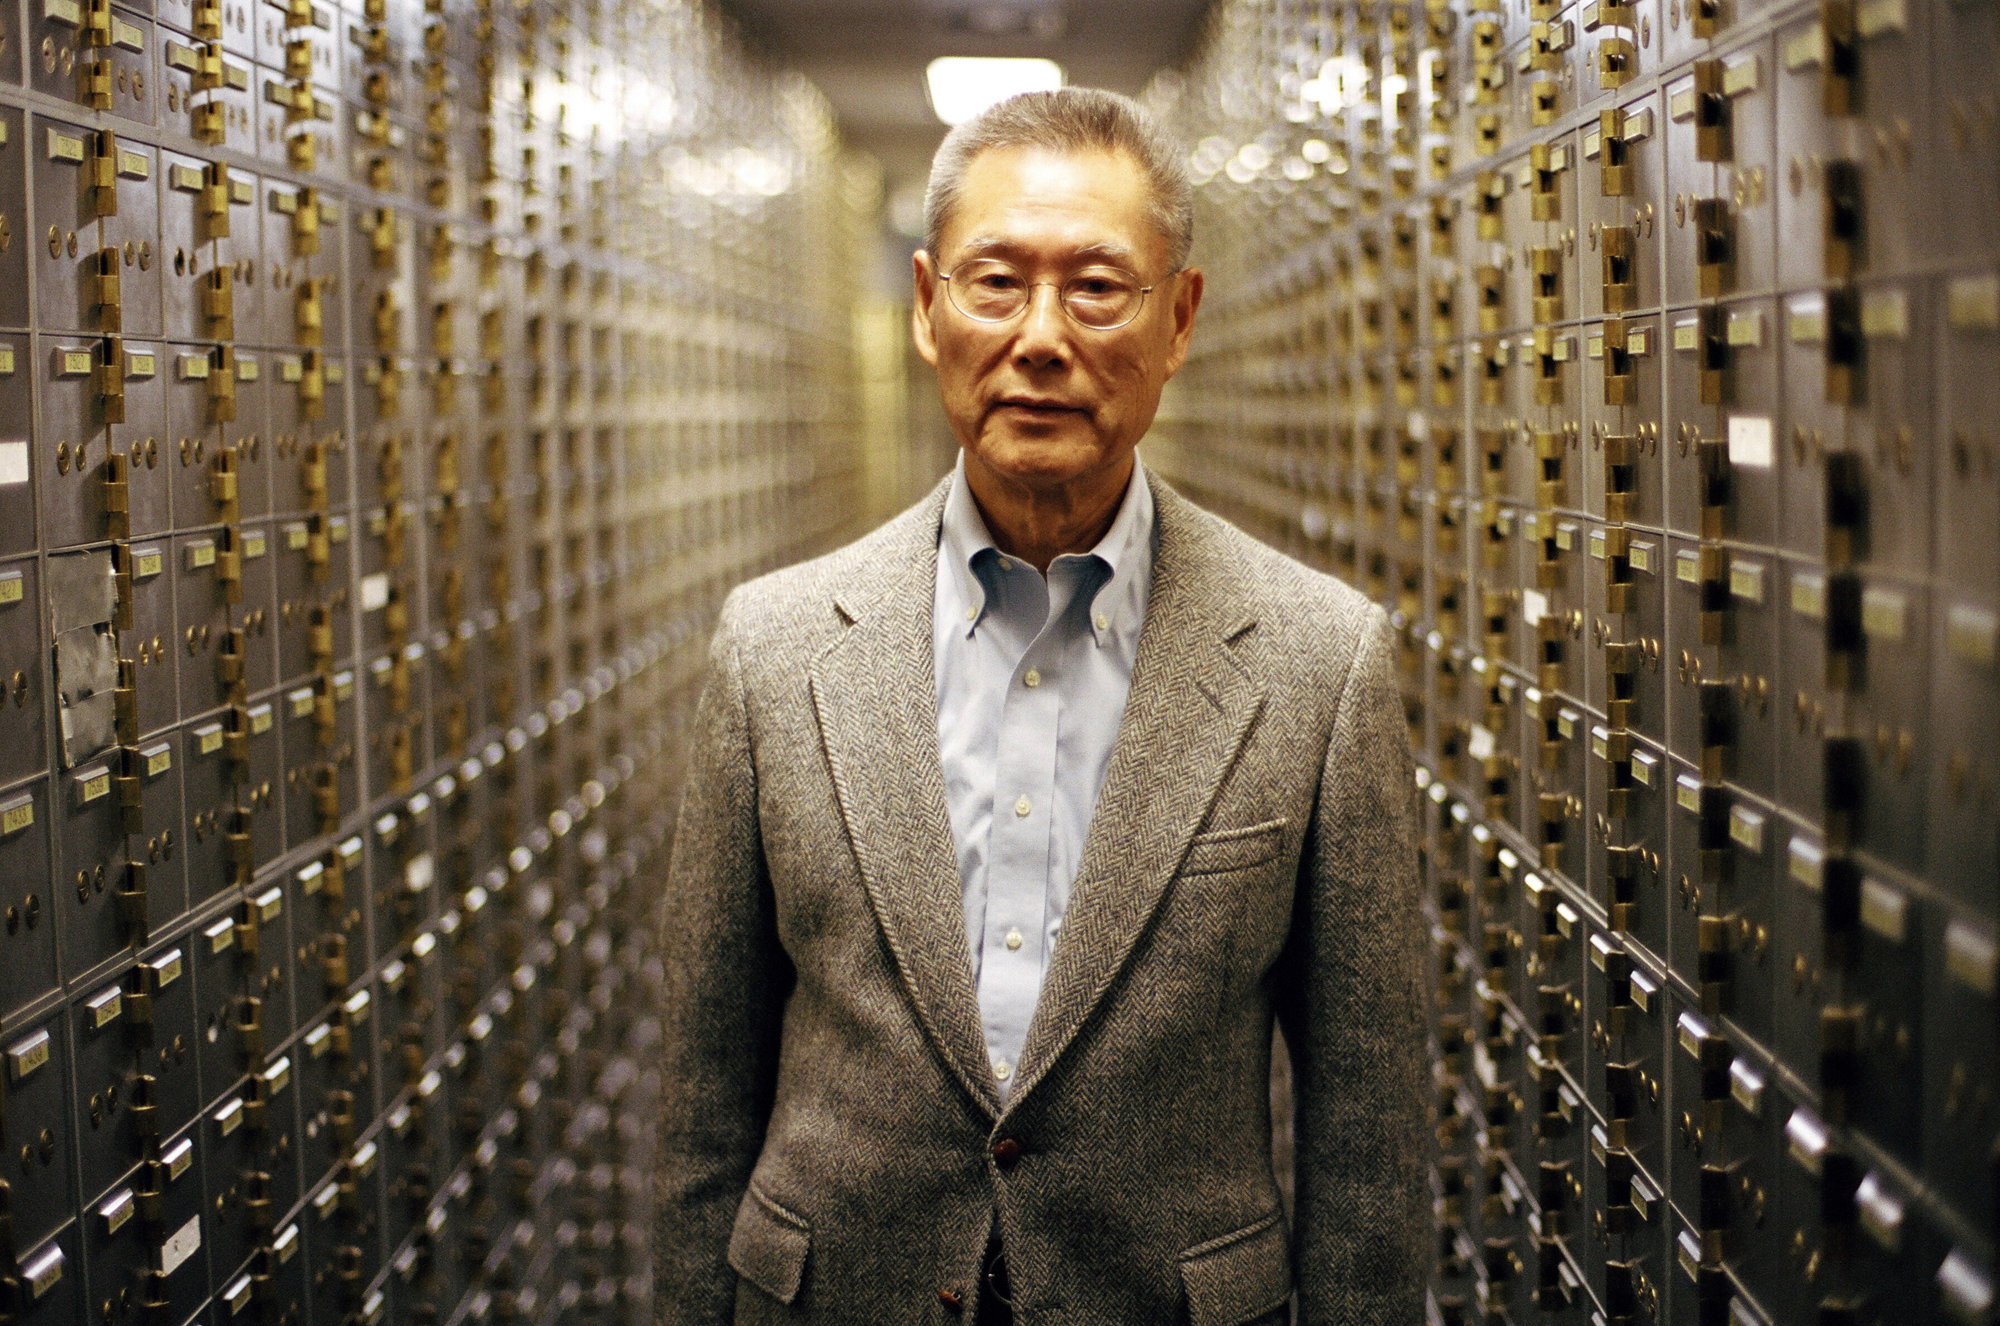 My latest project, Abacus: Small Enough to Jail is getting rave reviews. It will be in theaters nationwide, summer '17, and will air on PBS FRONTLINE in the autumn.....   https://www.nytimes.com/2017/05/18/movies/abacus-small-enough-to-jail-review.html?_r=0